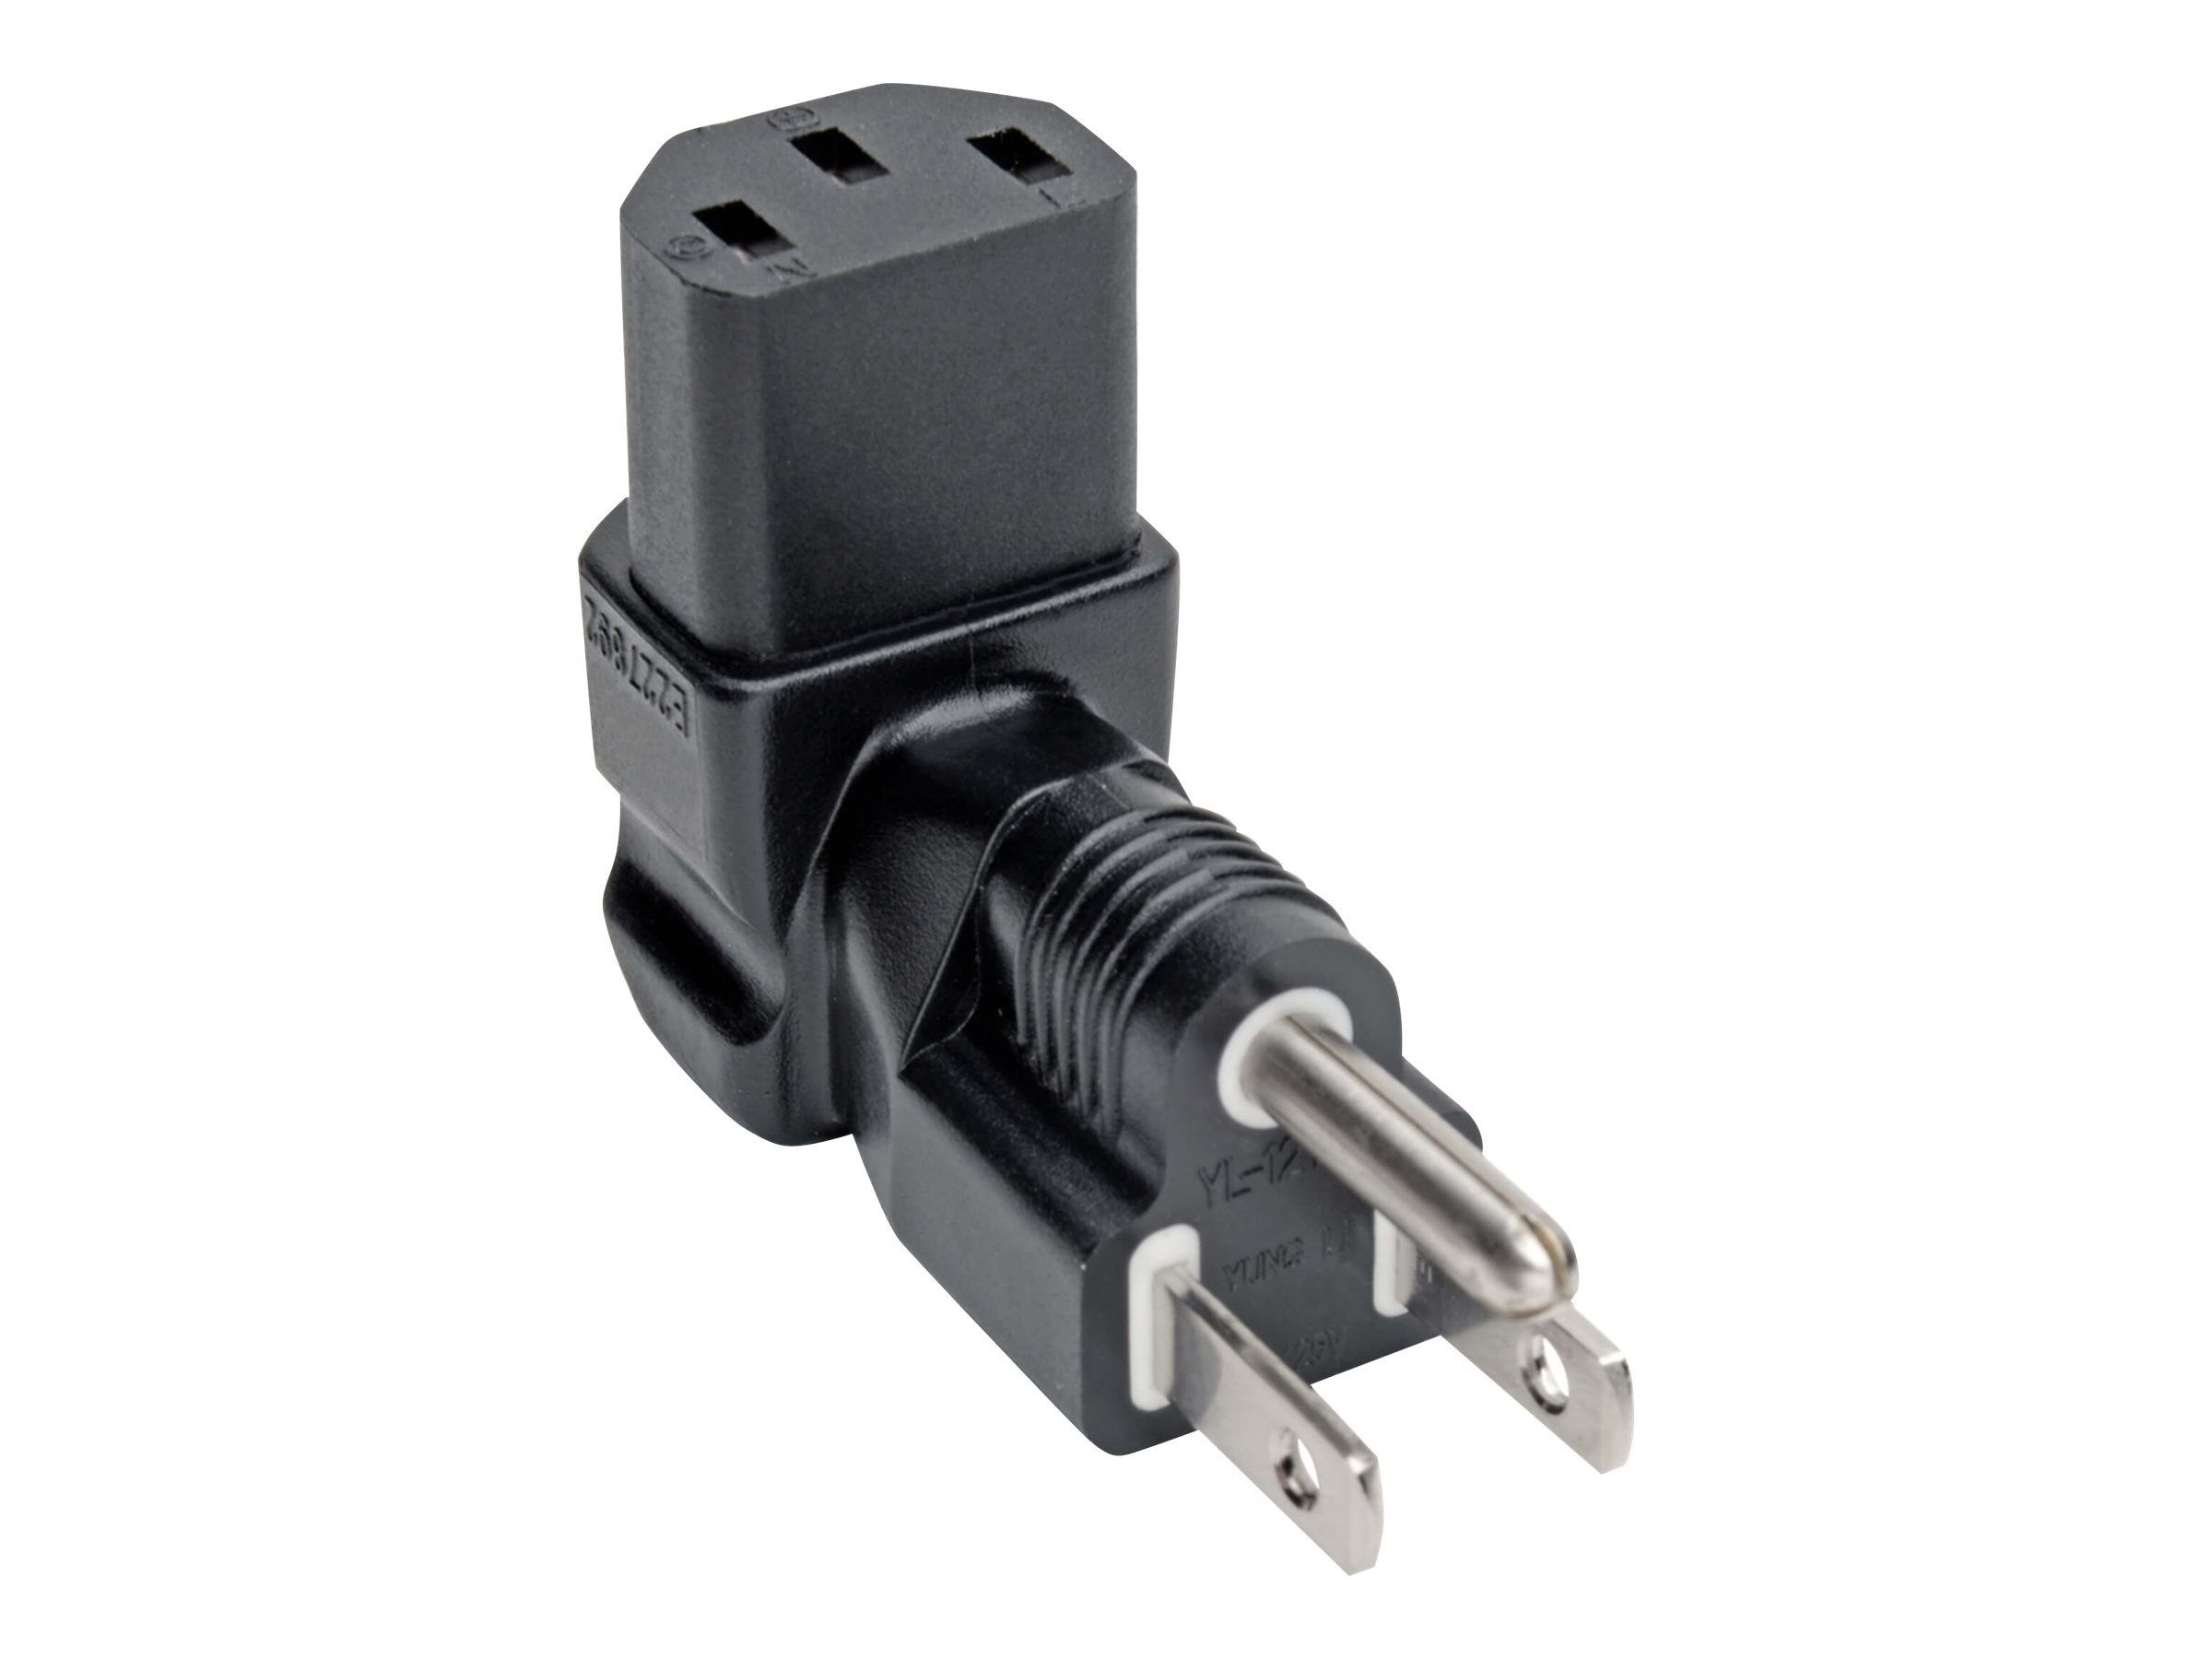 Tripp Lite Down-Angled NEMA 5-15P to C13 Power Cord Adapter - 10A, 125V, Black - power connector adapter